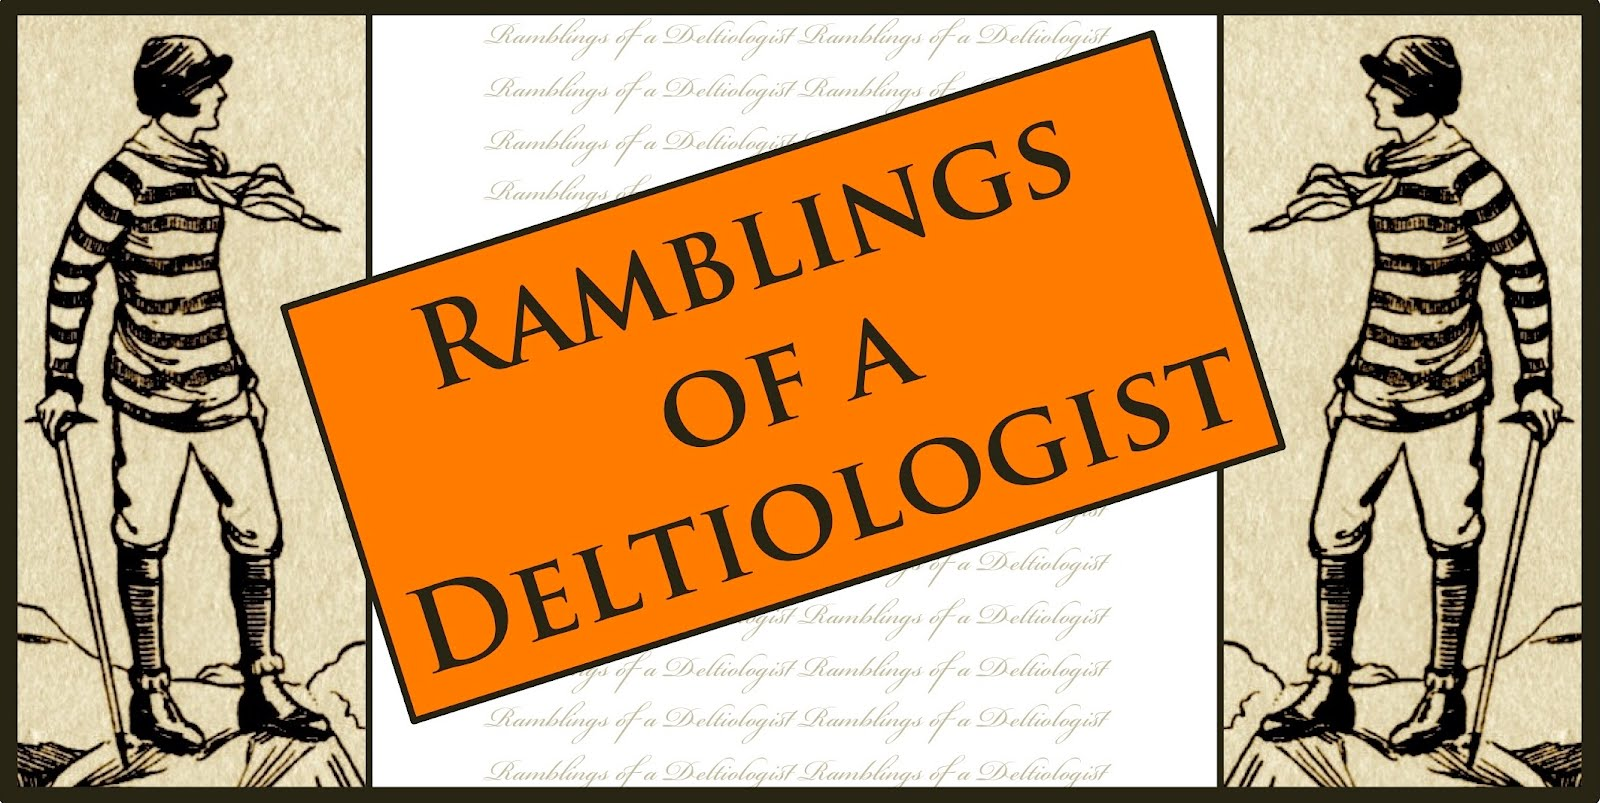 Ramblings of a Deltiologist